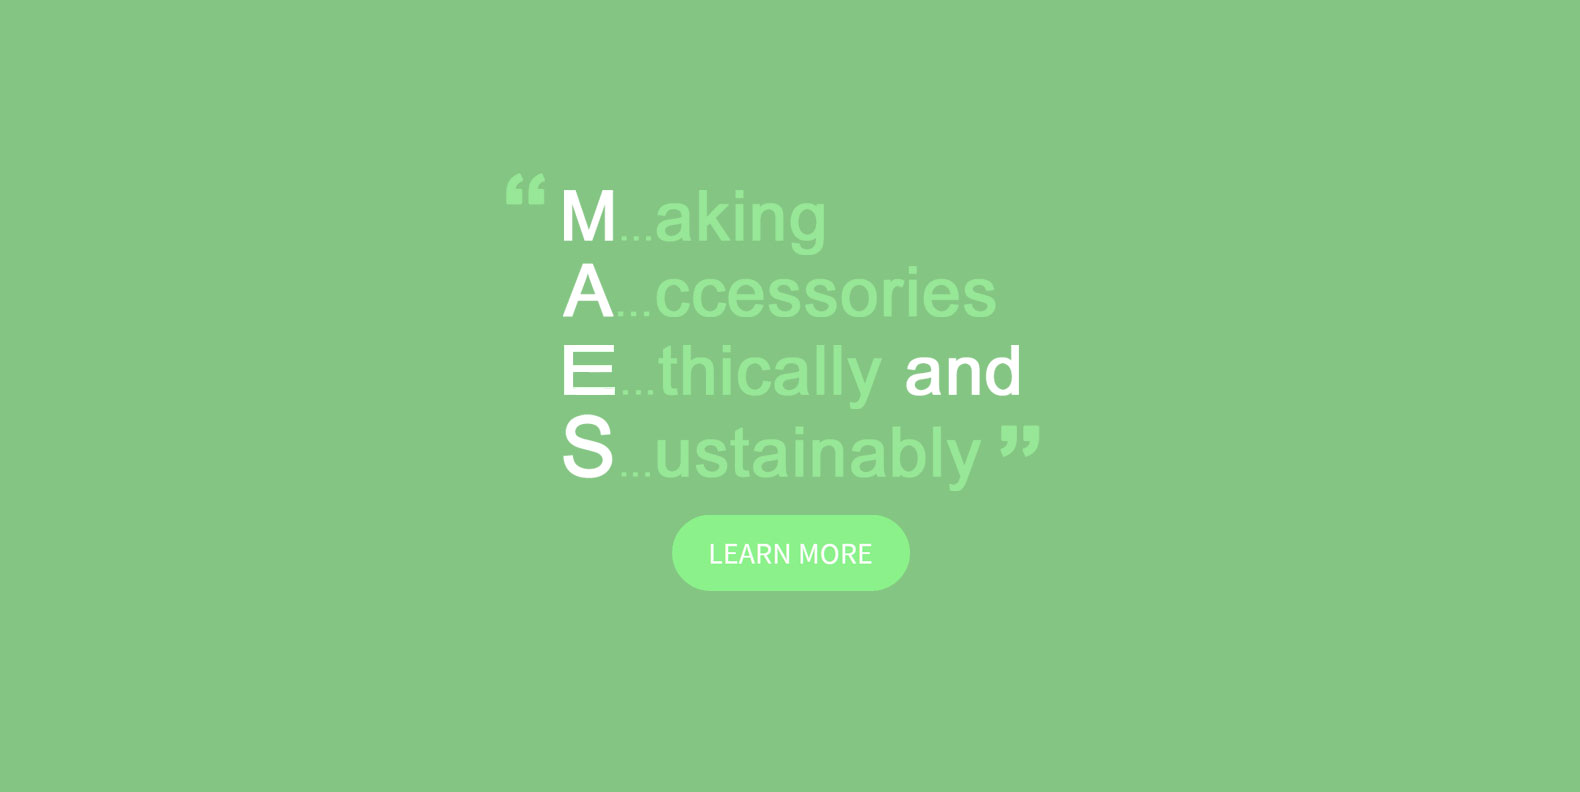 Making-Accessories-Ethically-&-Sustainably-Image